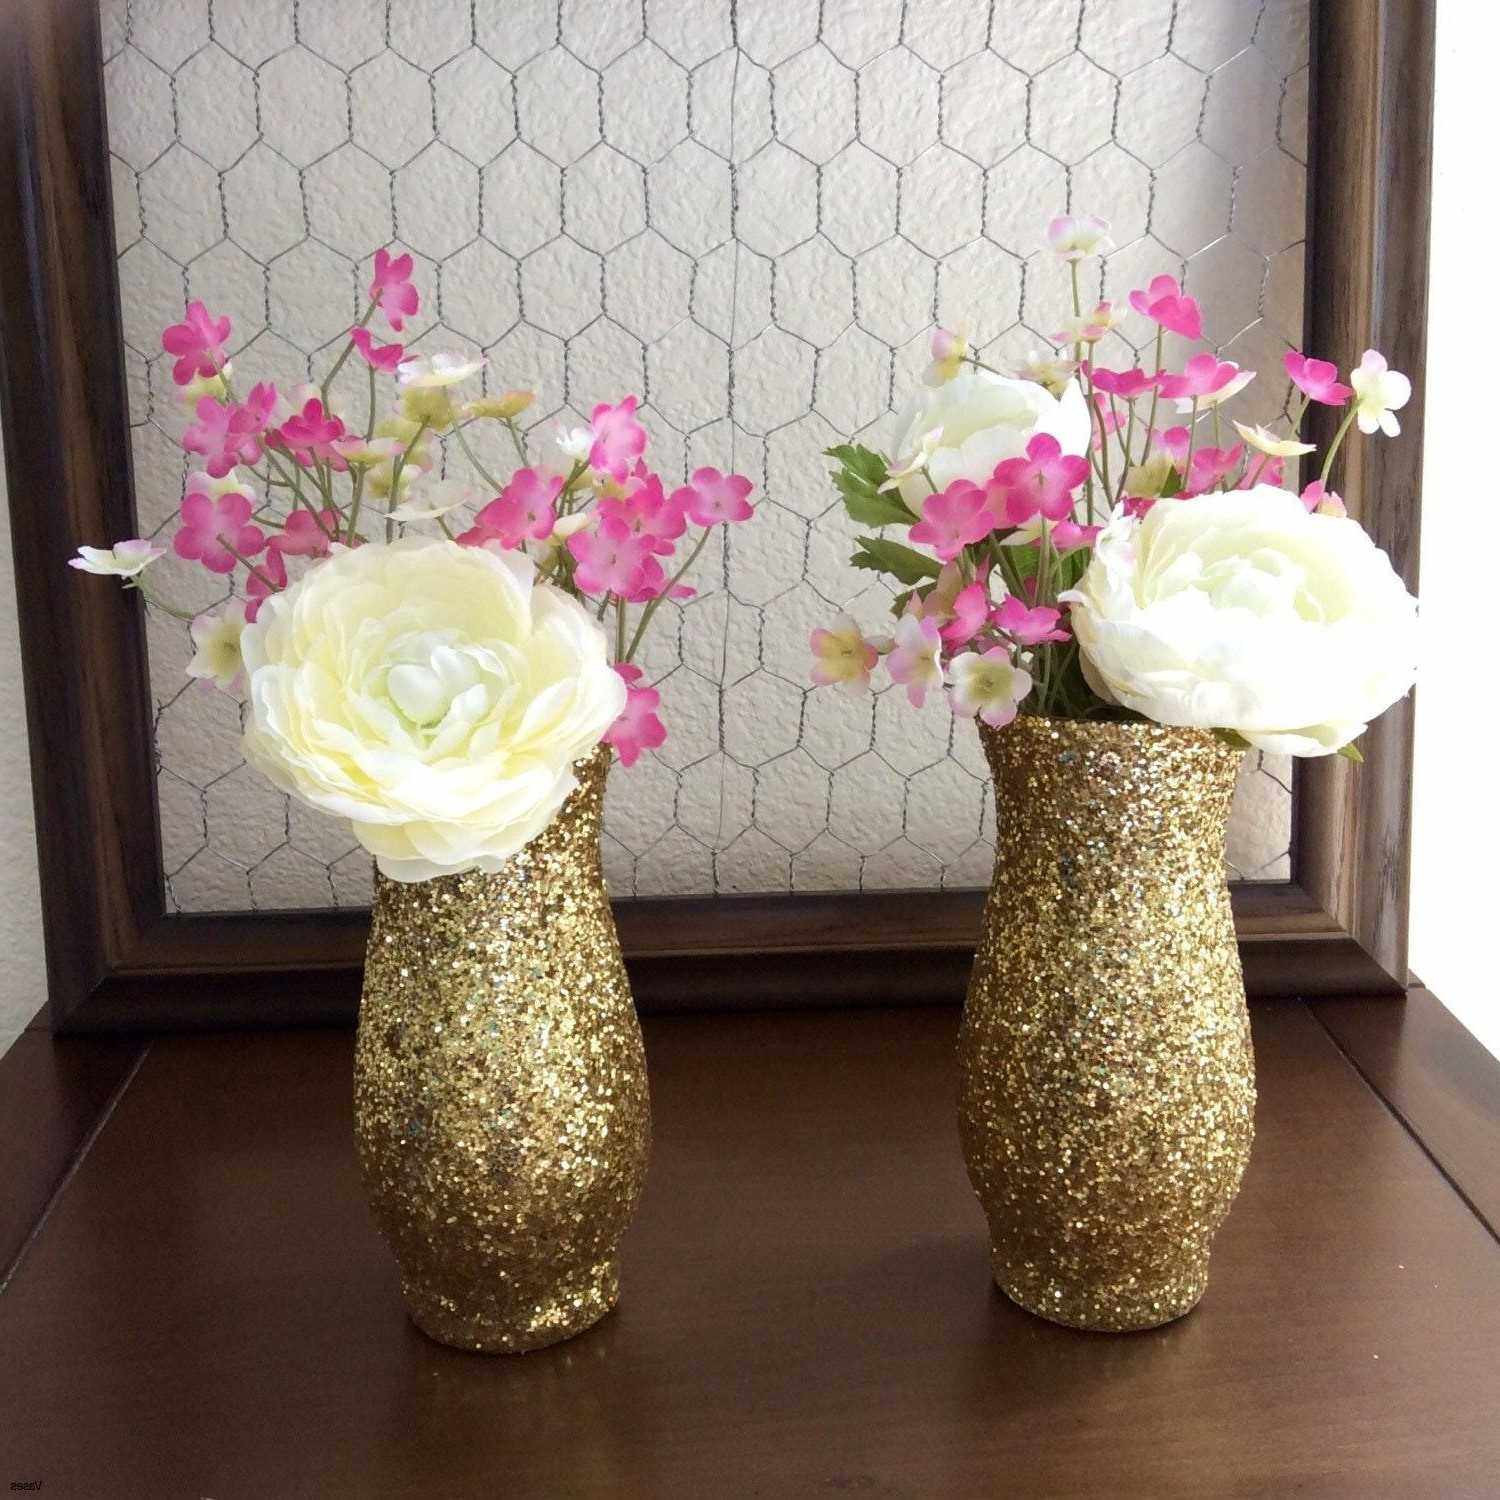 rose gold glitter vase of get flowers delivered new living room gold vases awesome h vases inside get flowers delivered new living room gold vases awesome h vases gold glitter vase diy